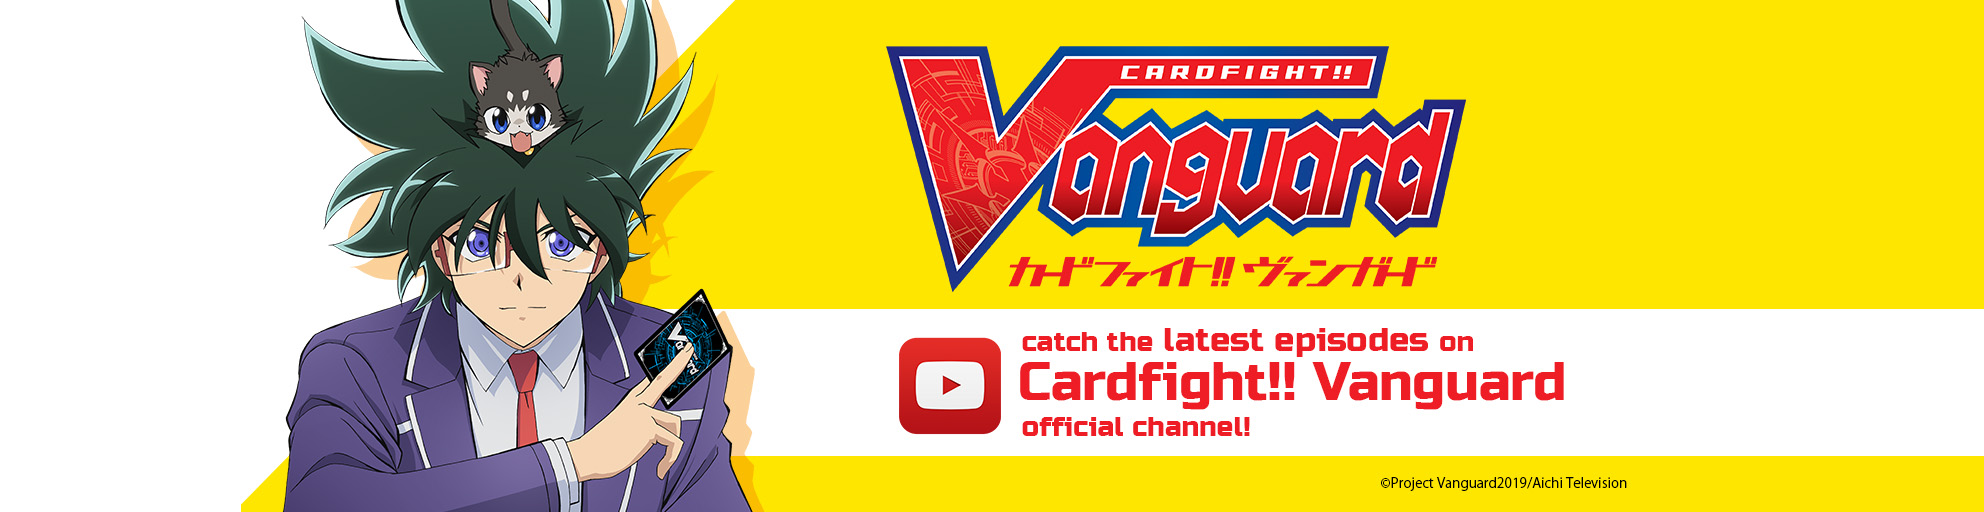 Cardfight!! Vanguard New Animation on YouTube